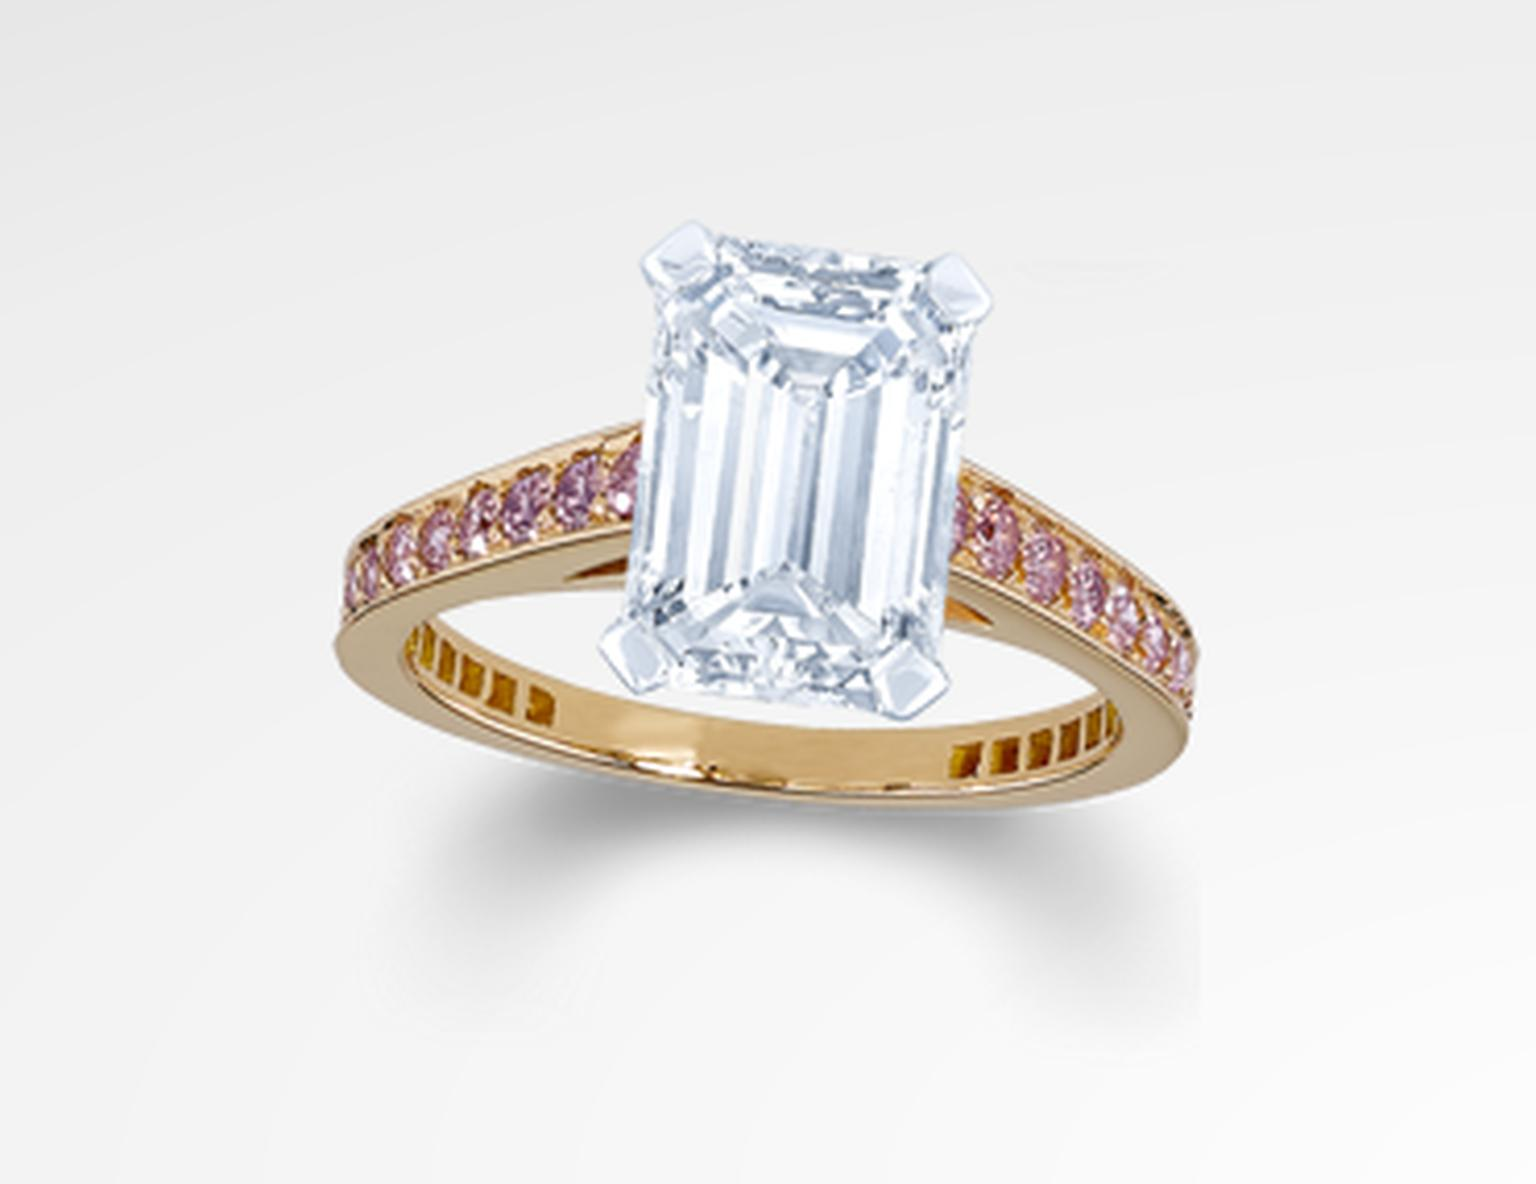 Graff emerald-cut diamond engagement ring in Graff's signature Flame setting with a rose gold band set with pink diamonds.